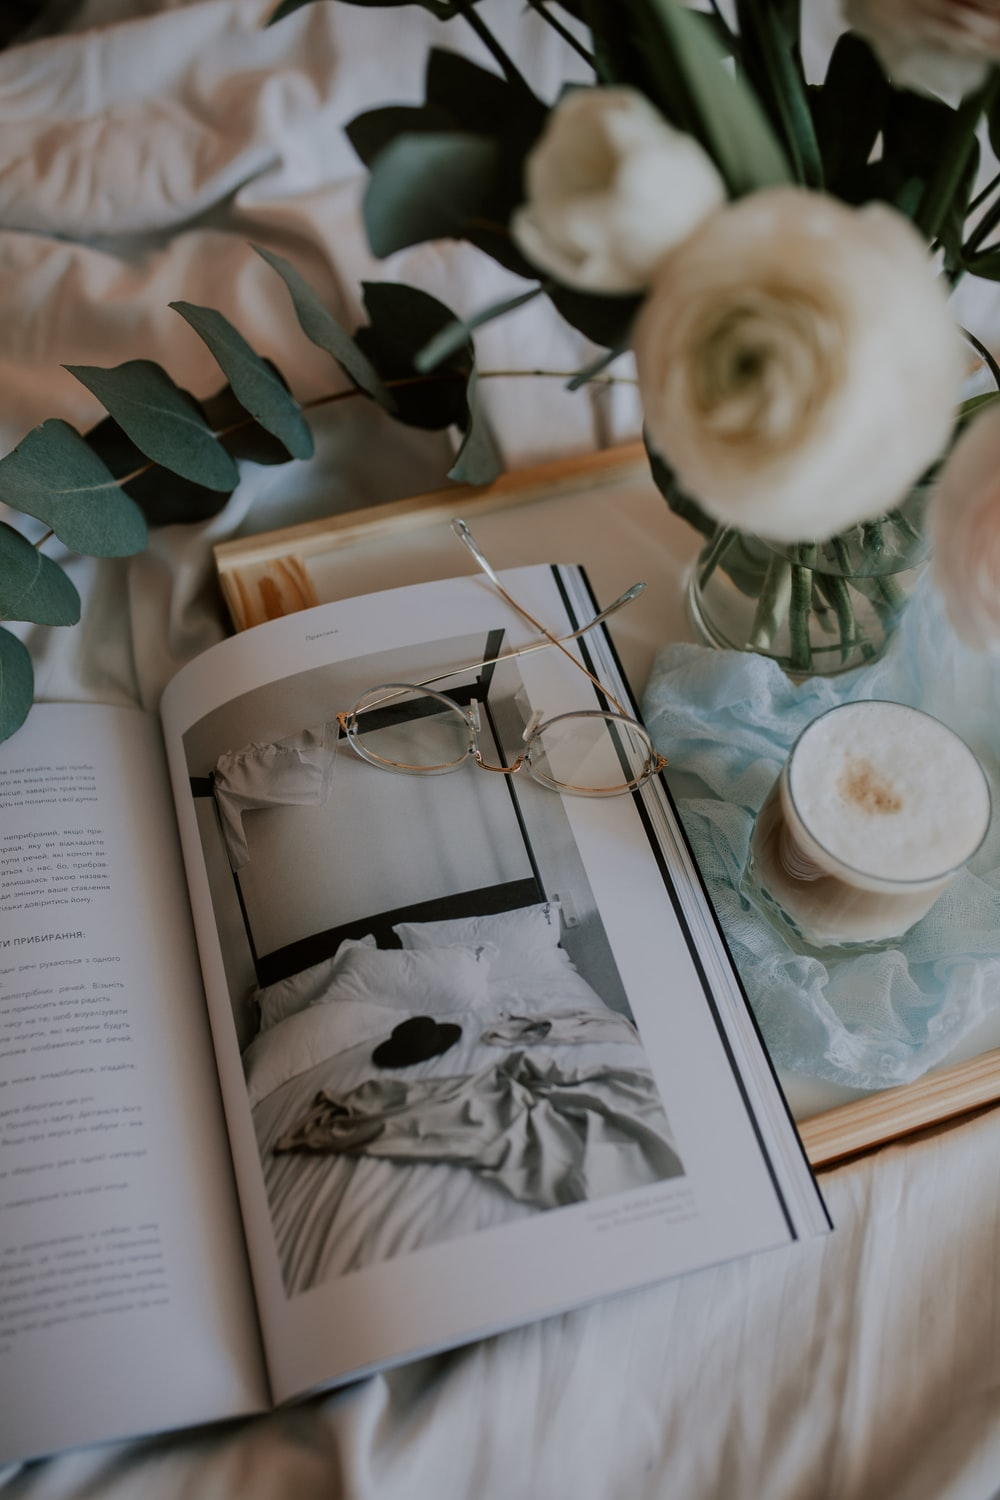 white ceramic teacup on white ceramic saucer on book page